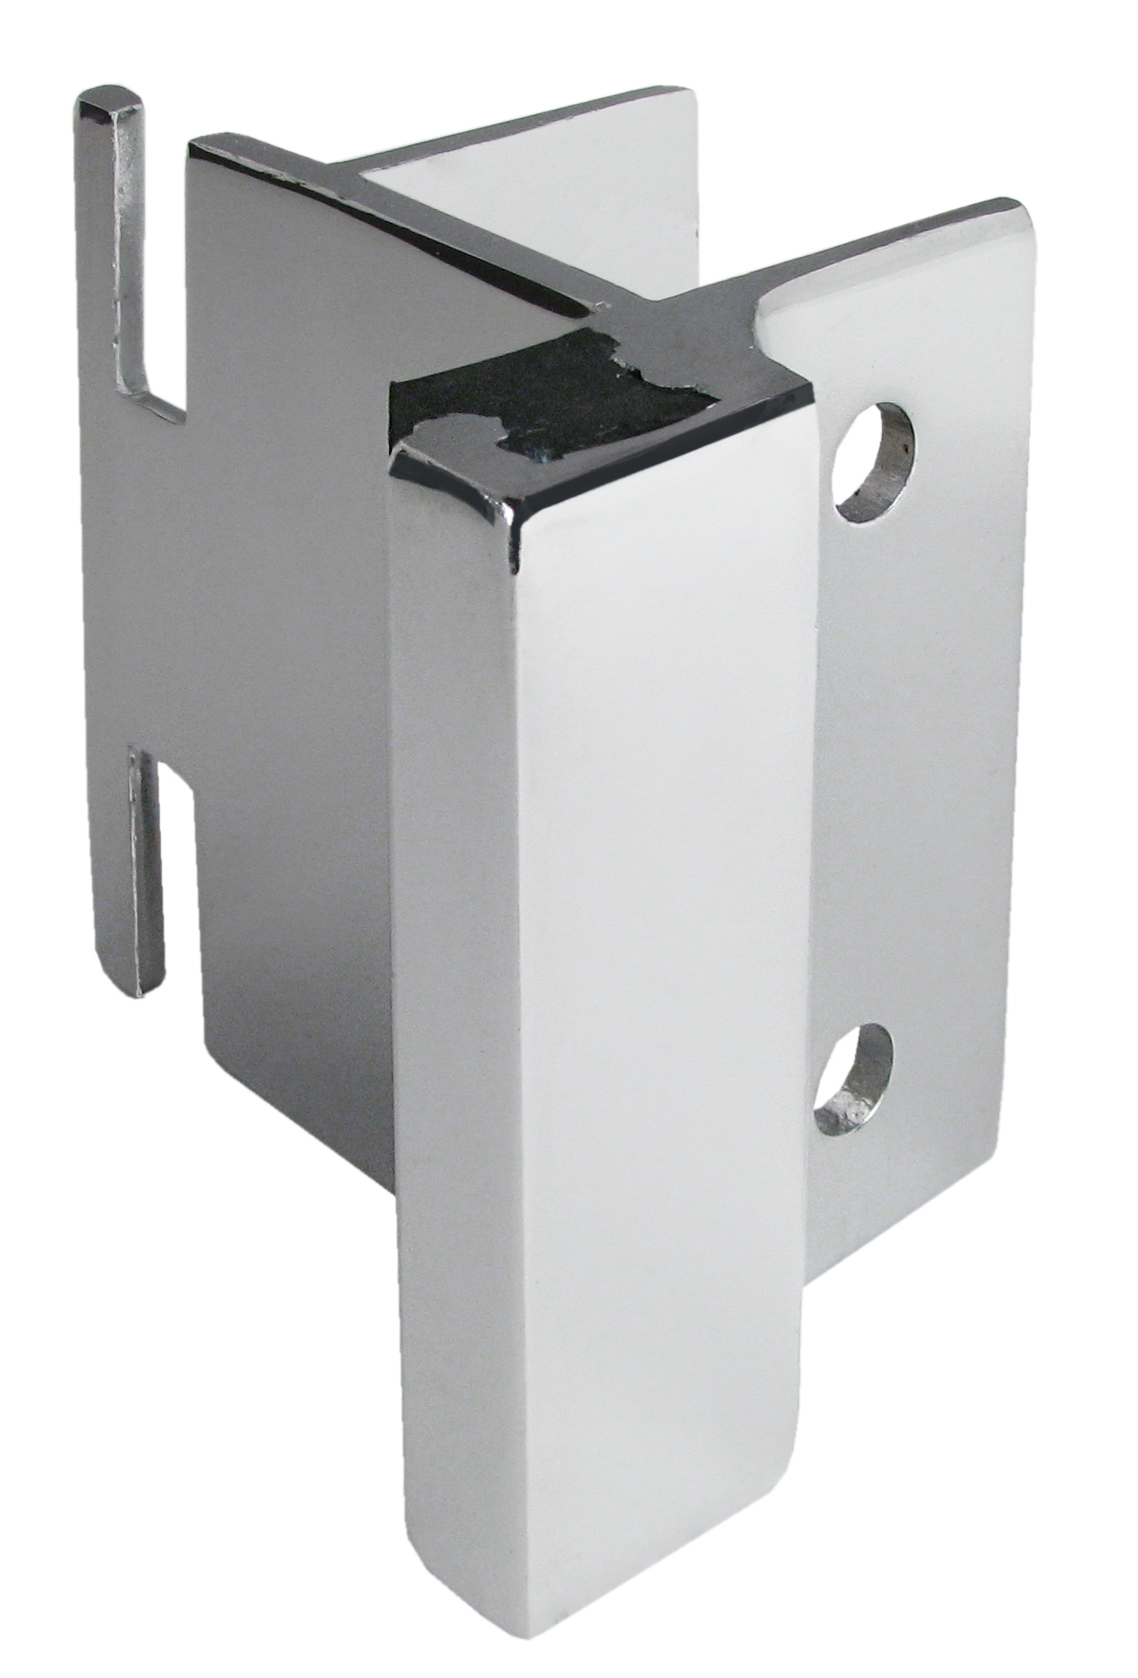 Toilet Partition Strikes Keepers At Equiparts - Bathroom partition slide latch